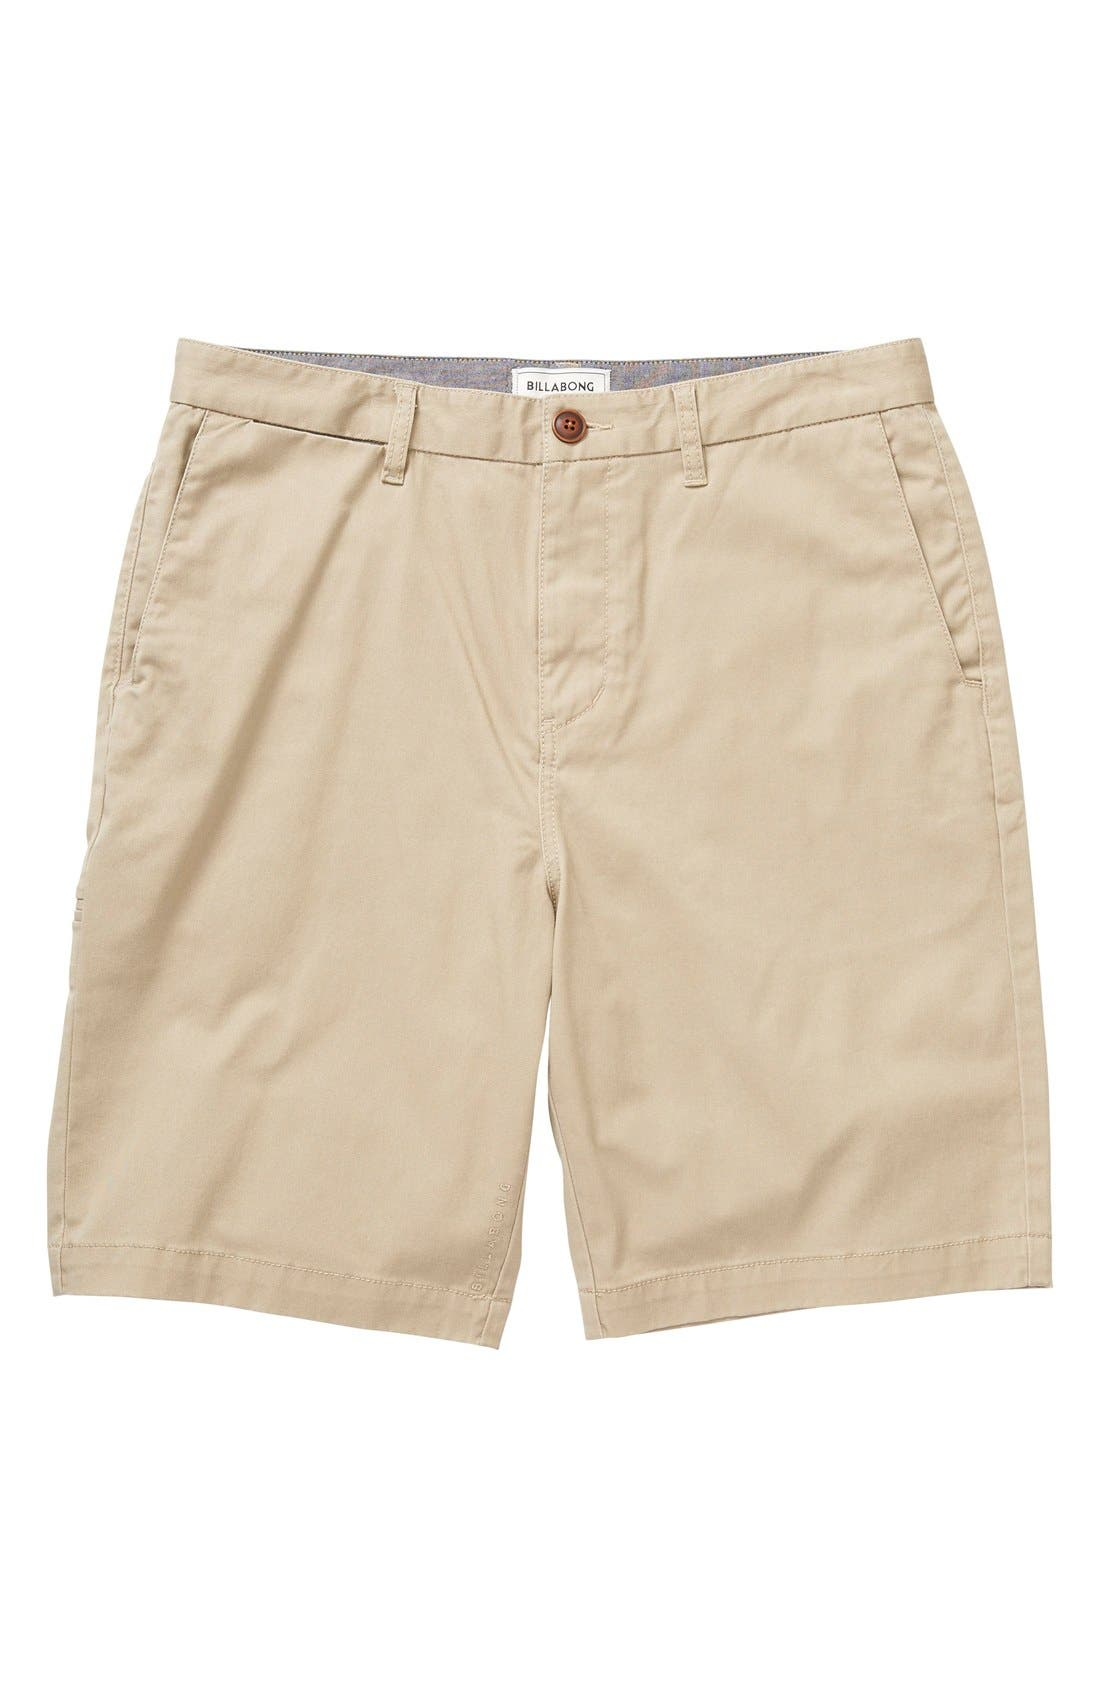 Main Image - Billabong 'Carter' Cotton Twill Shorts (Big Boys)